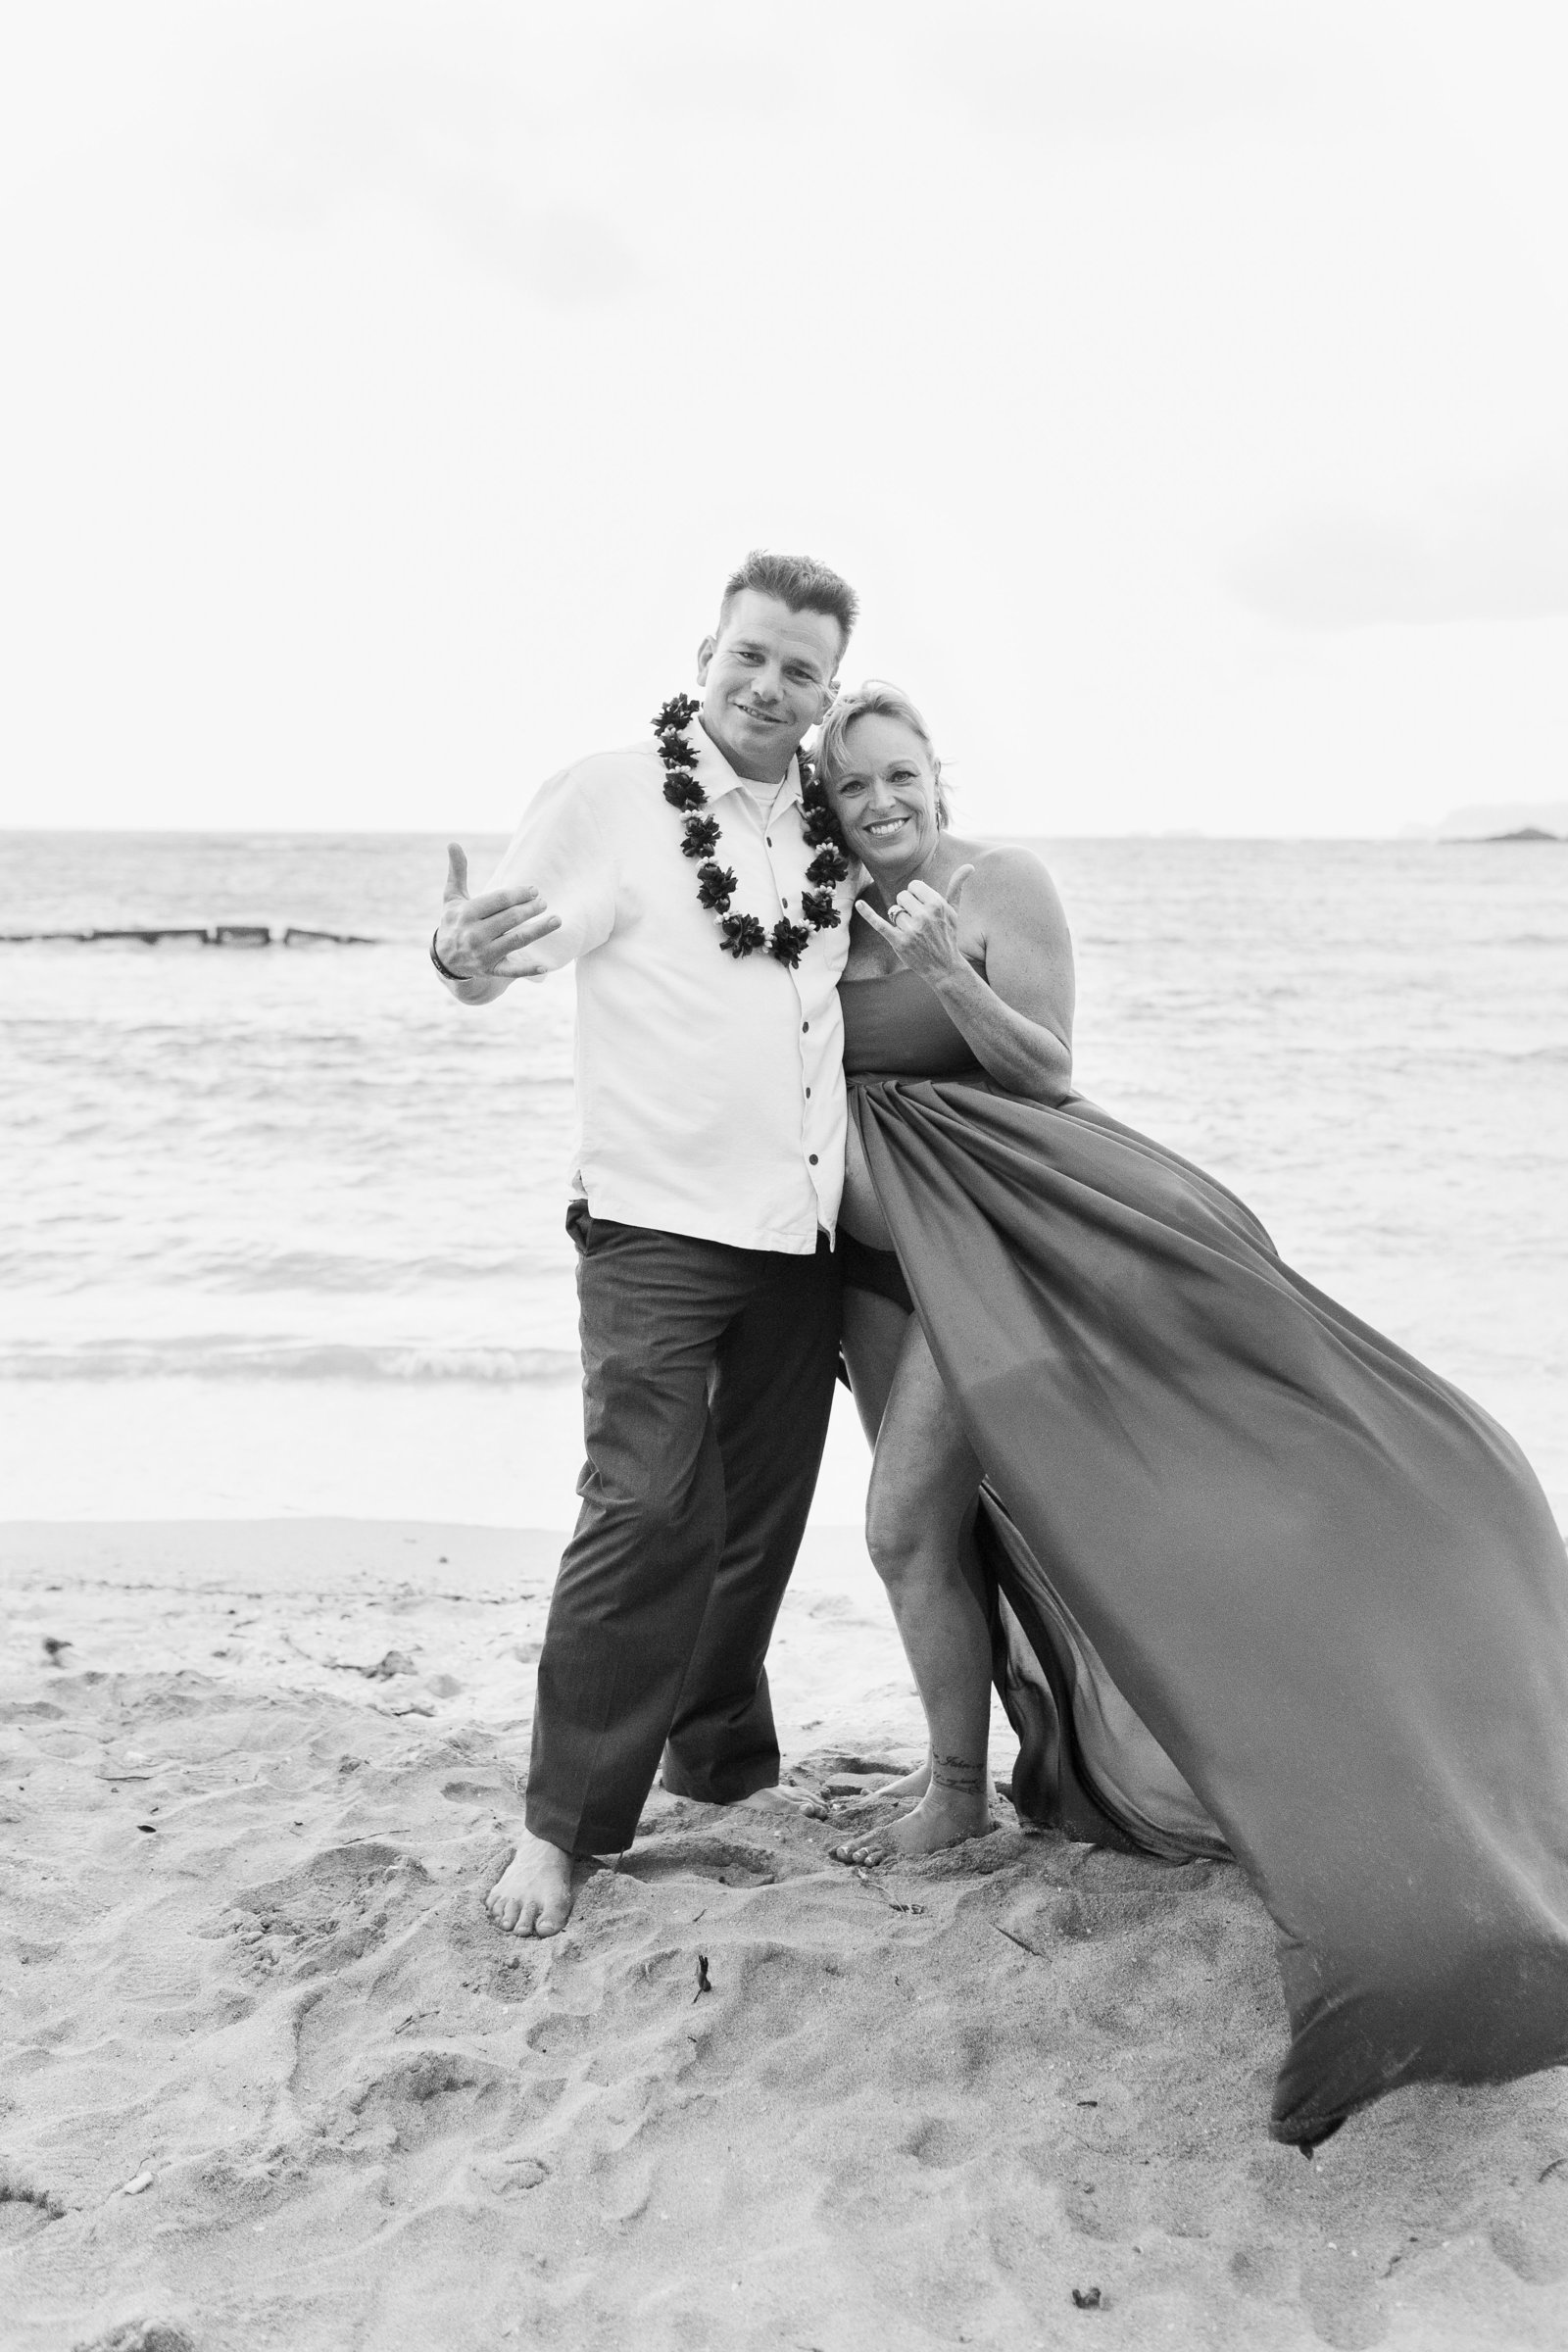 maternity Photoshoot Kualoa Beach Oahu Hawaii Brooke flanagan Photography-8